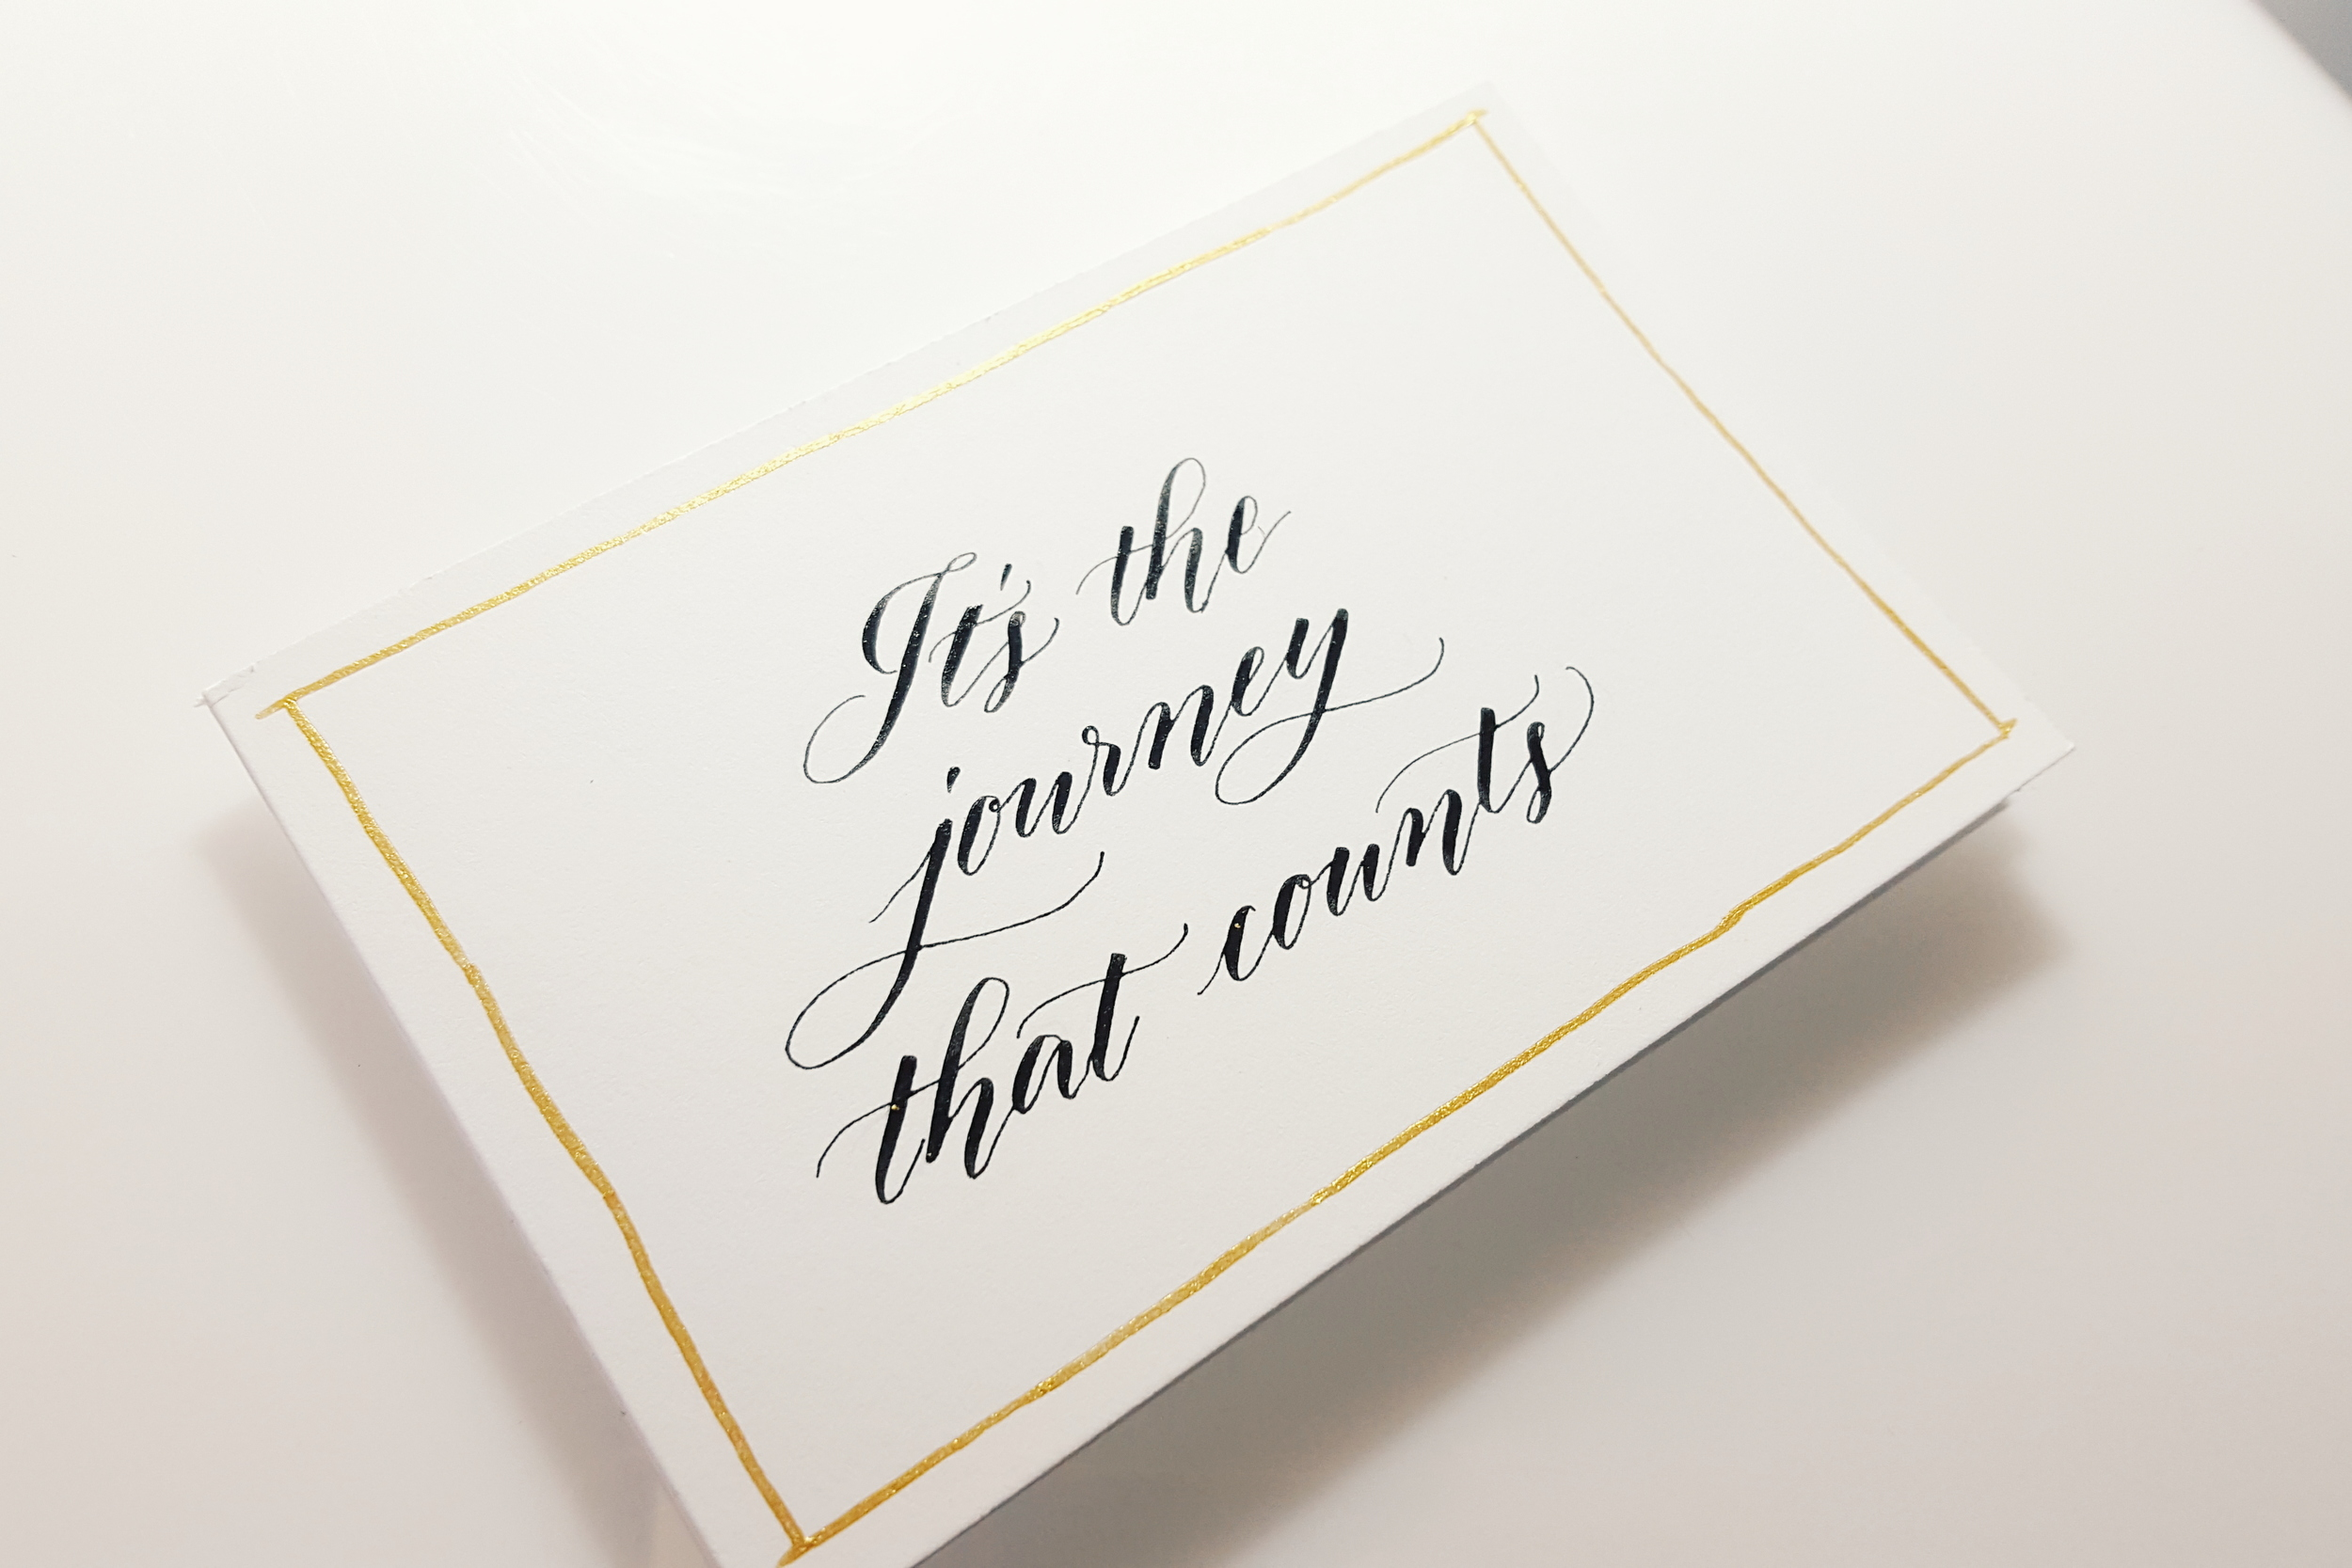 Custom Cards commissioned for a travelling couple, and feeling its many meanings these days! :)